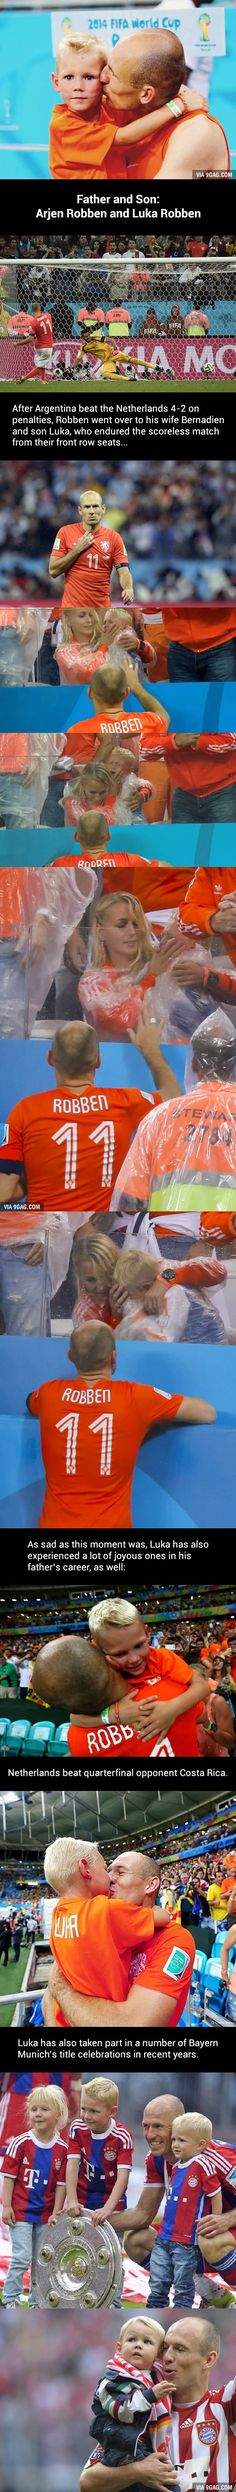 Netherlands lost the World Cup match, but Robben and his son Luka have won the internet!